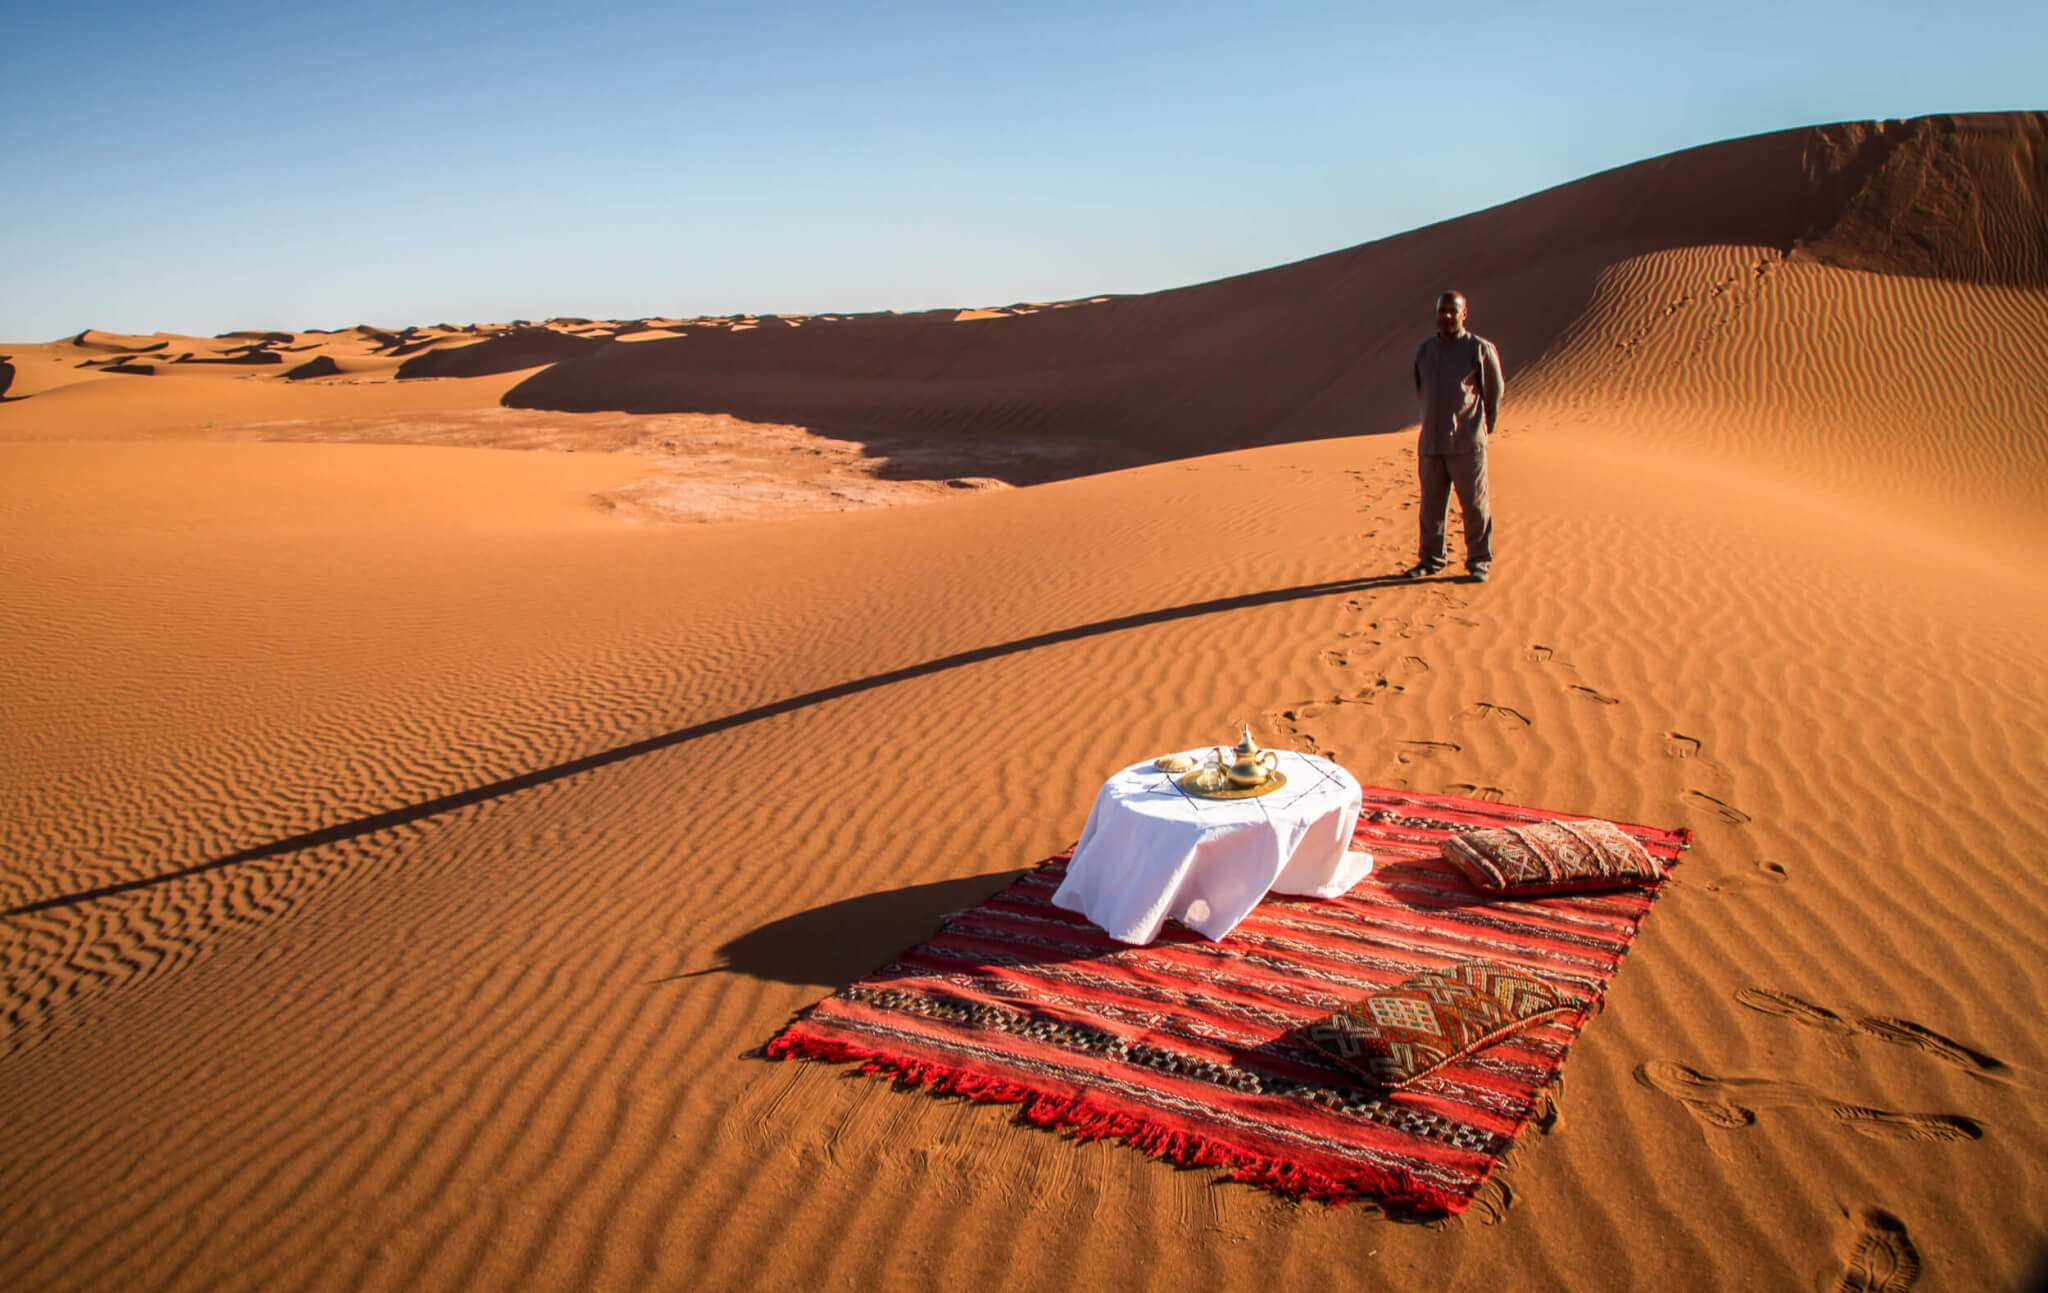 Dar Ahlam table in the desert